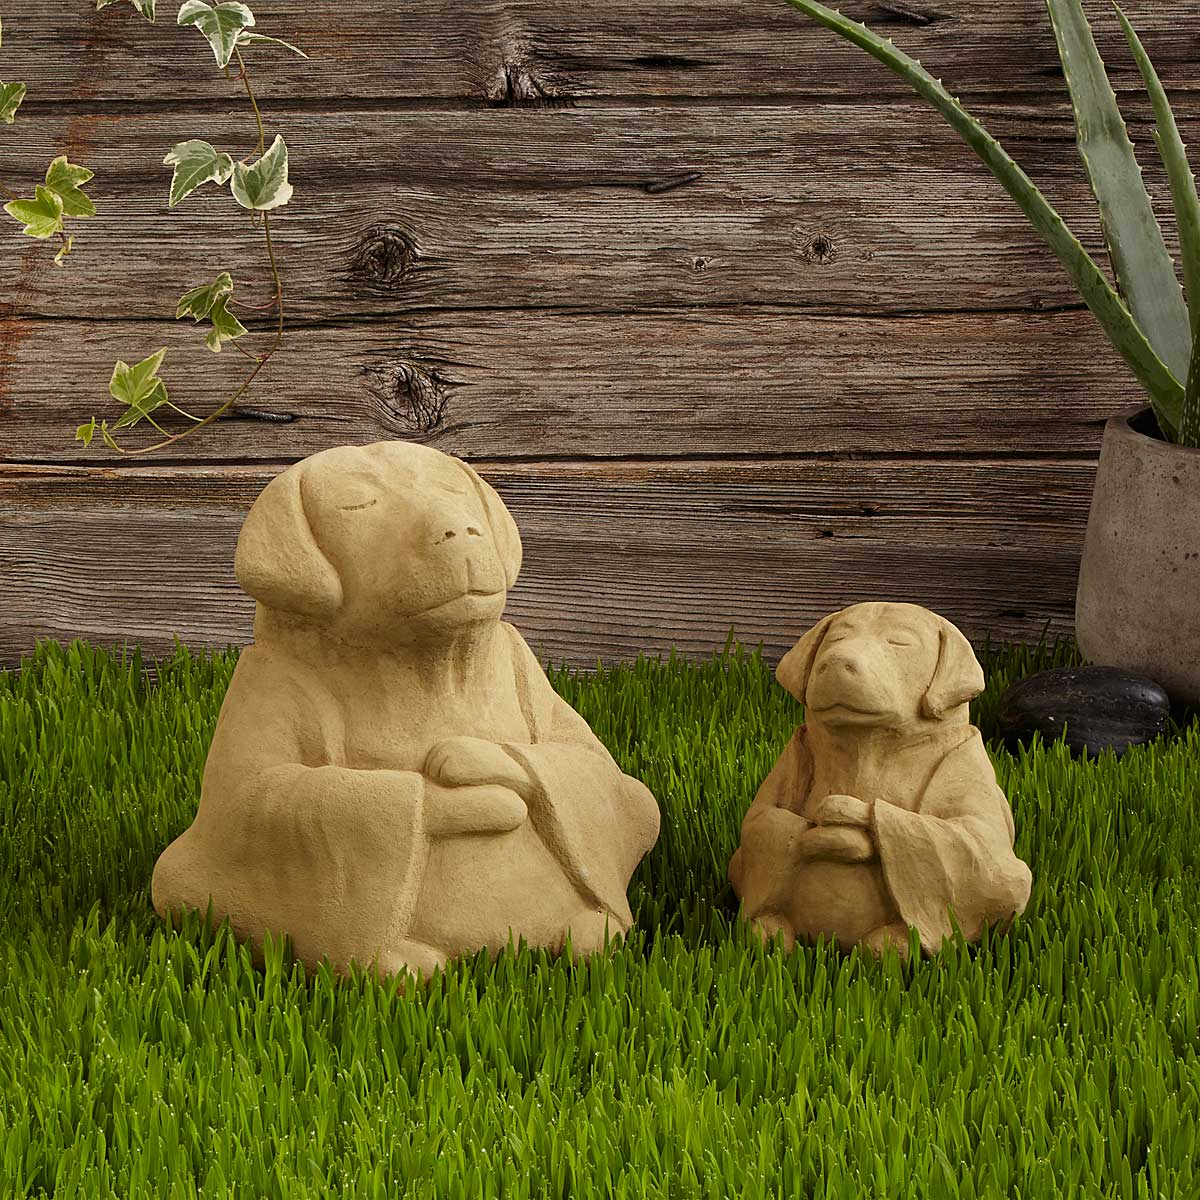 Zen Dog Garden Sculpture zen garden praying sculpture